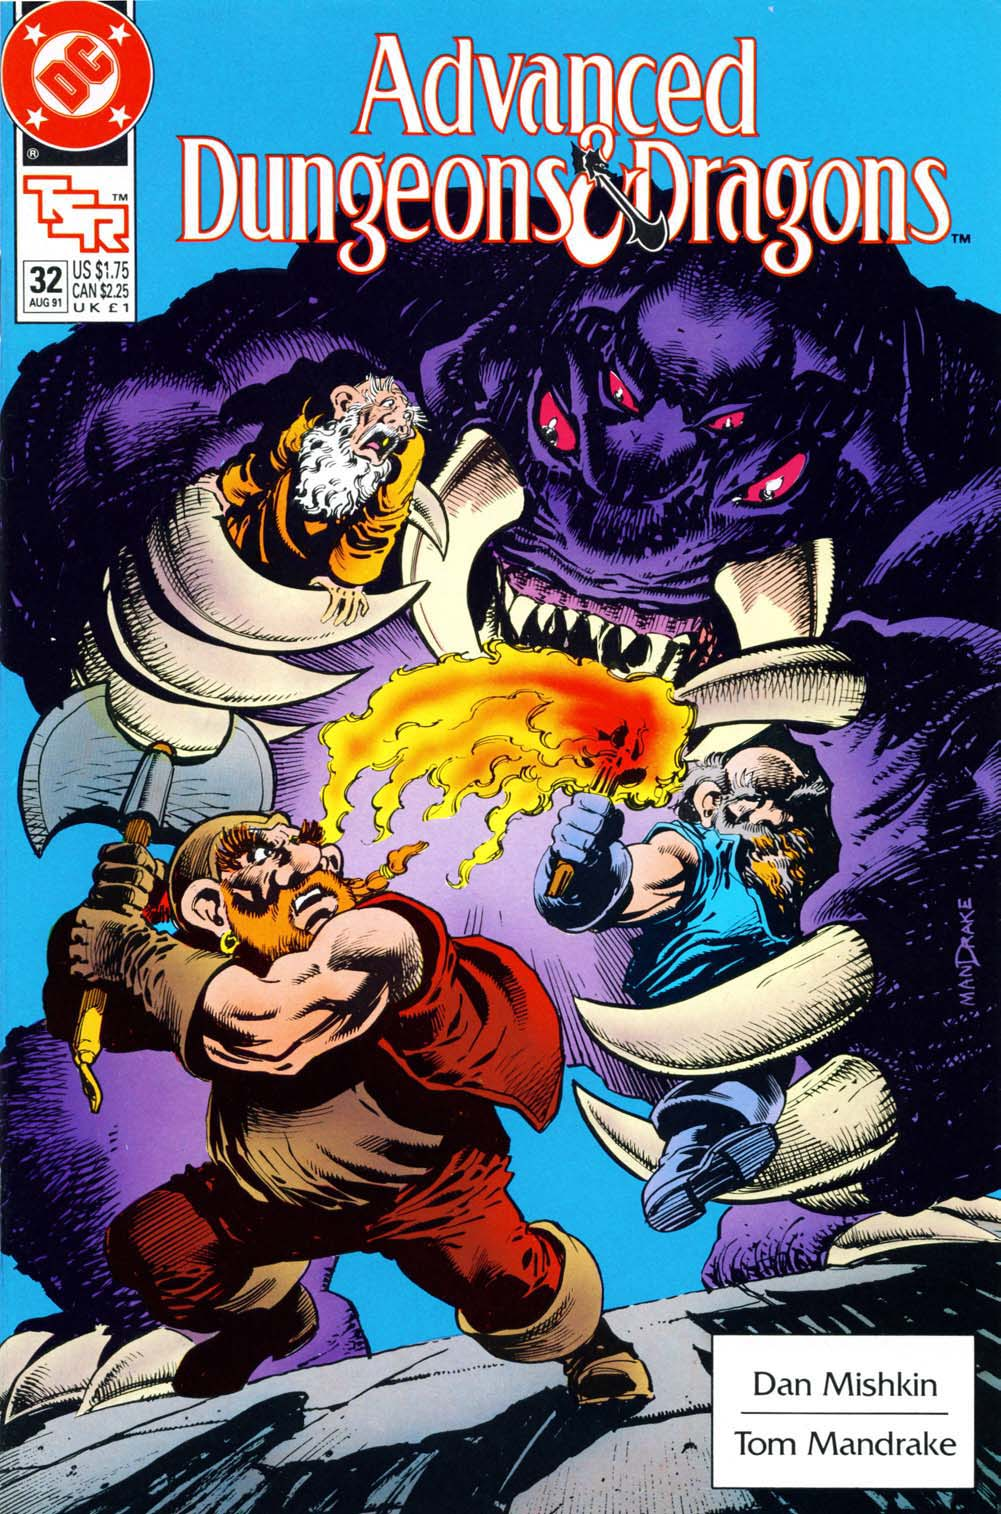 Read online Advanced Dungeons & Dragons comic -  Issue #32 - 1